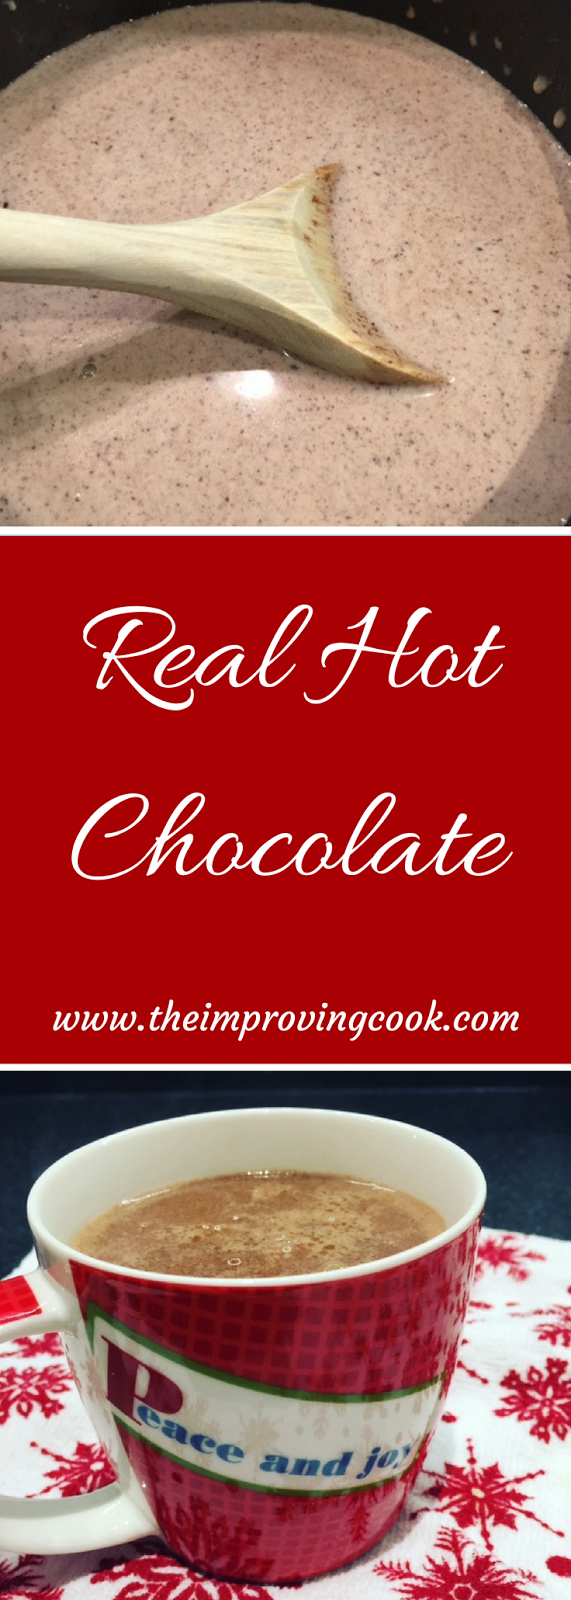 Real Hot Chocolate pinnable image